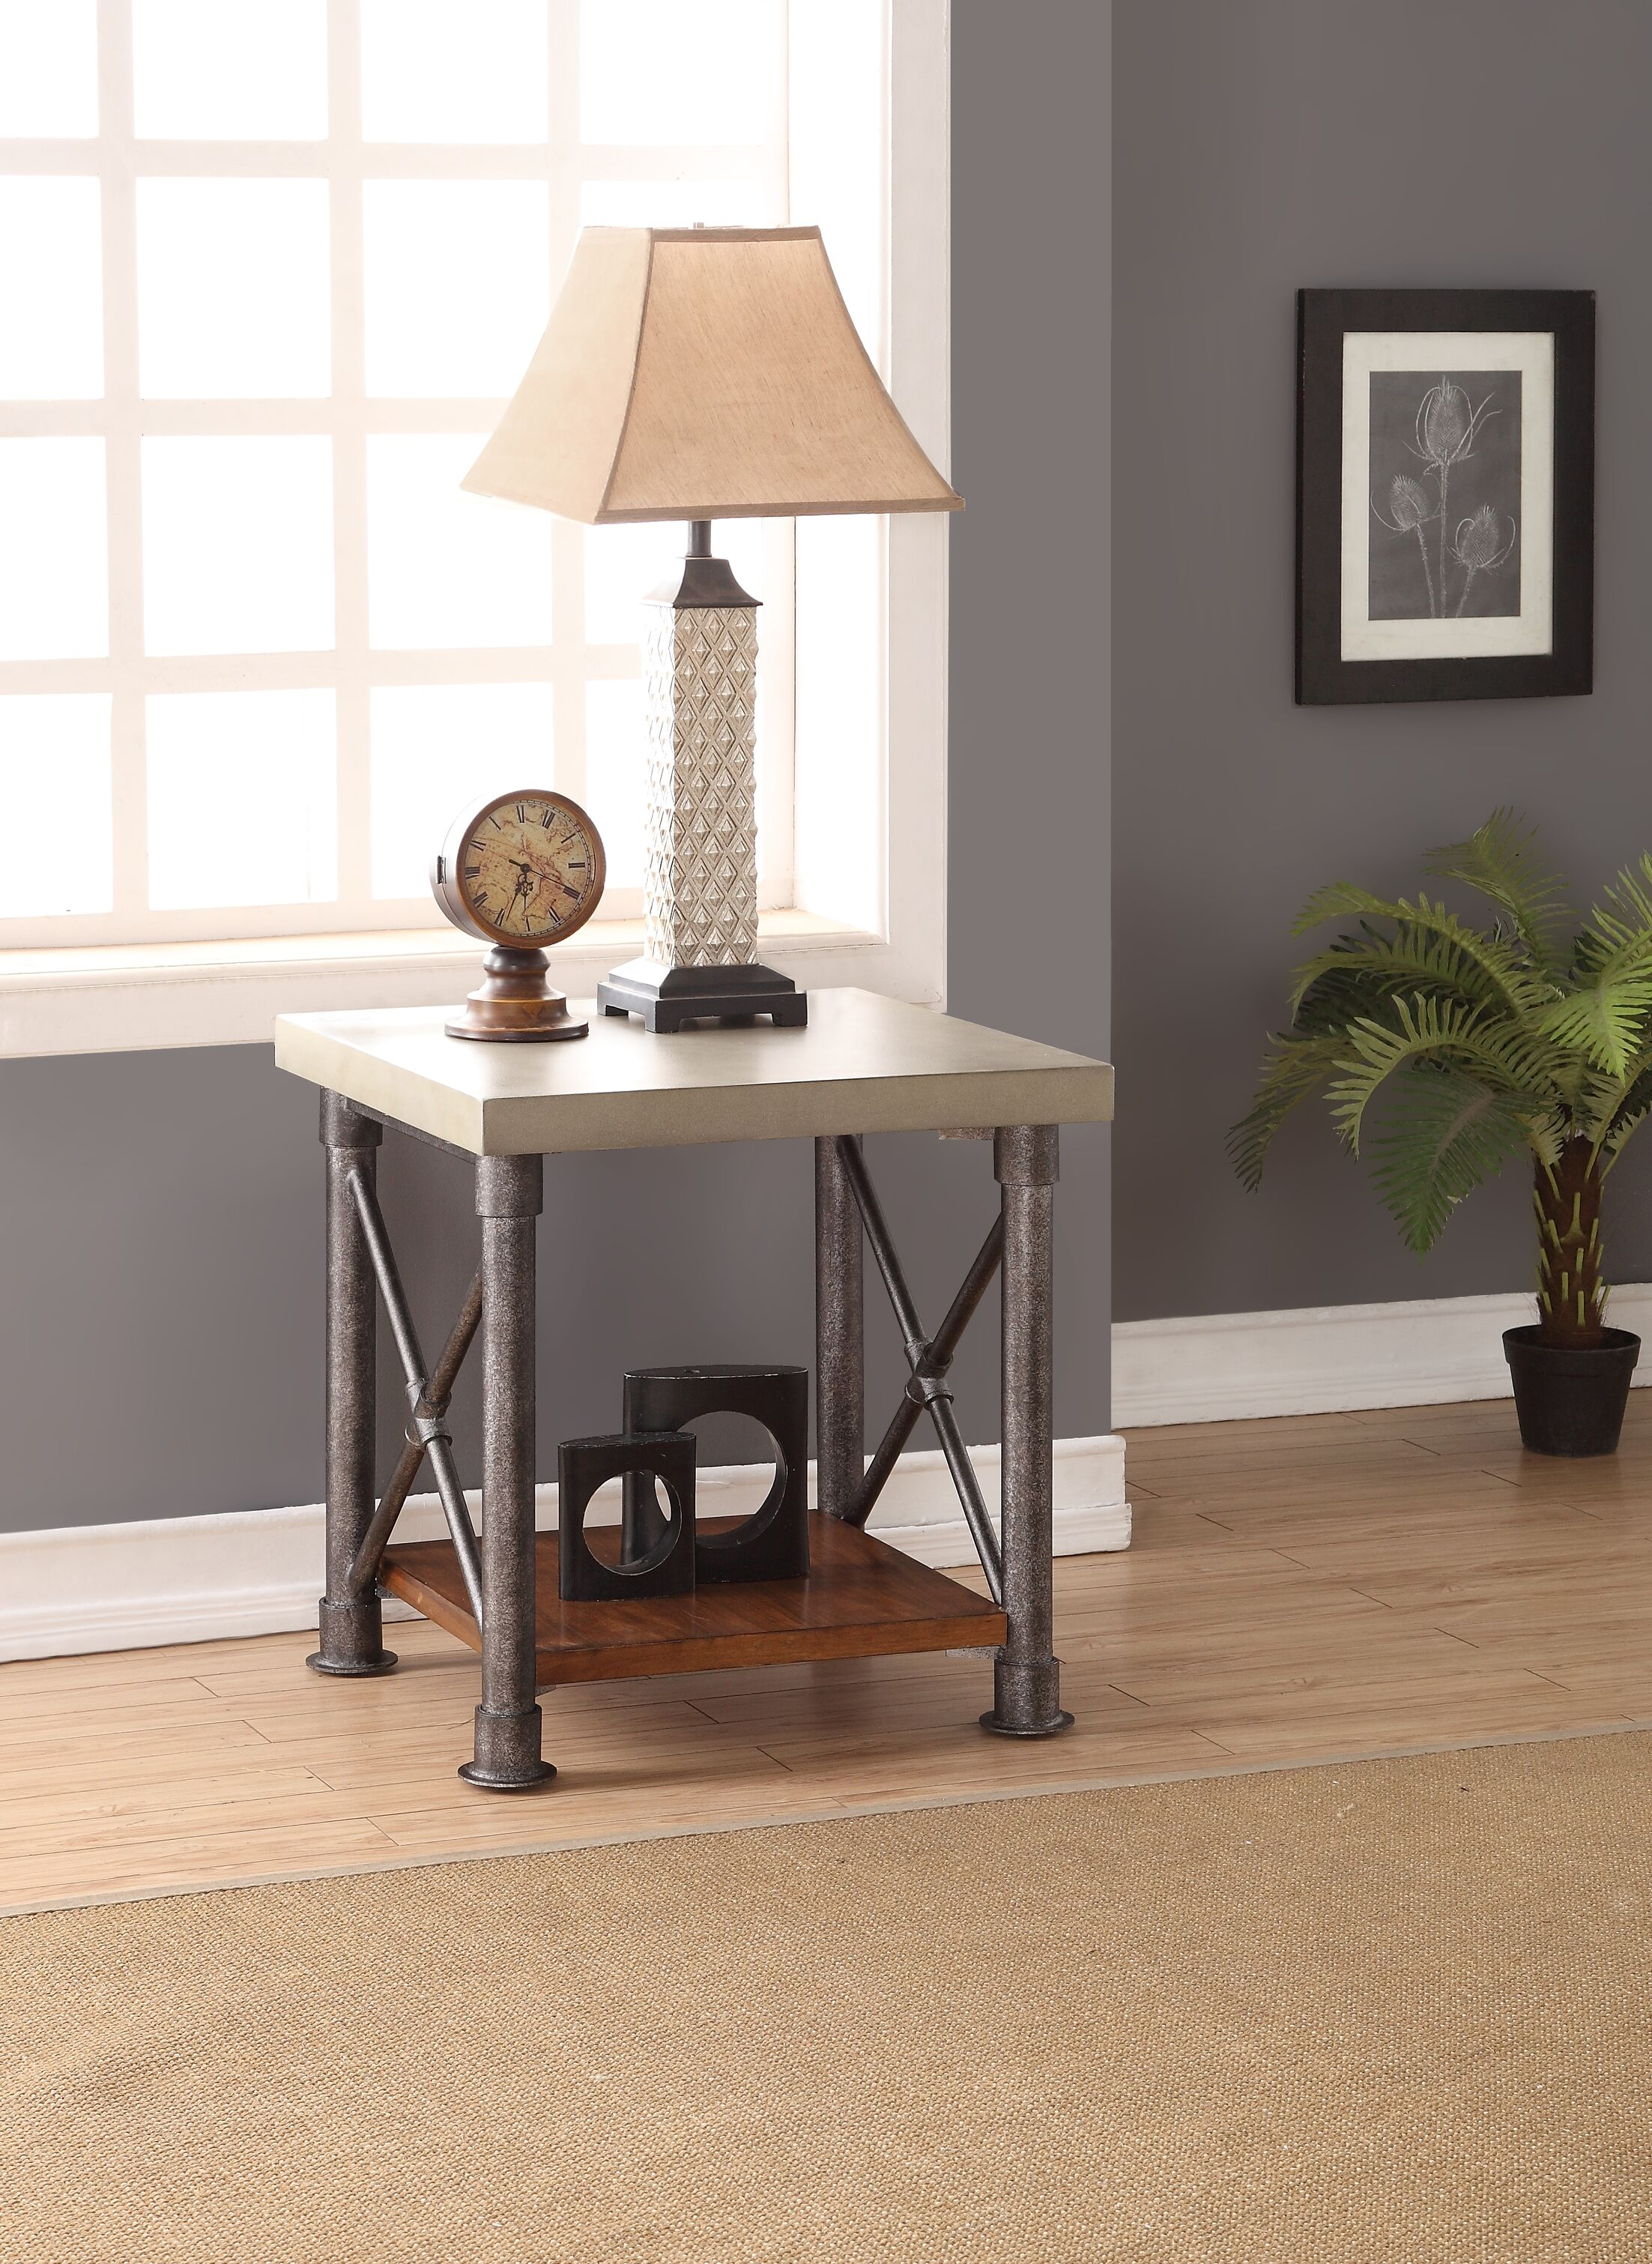 Perei End Table